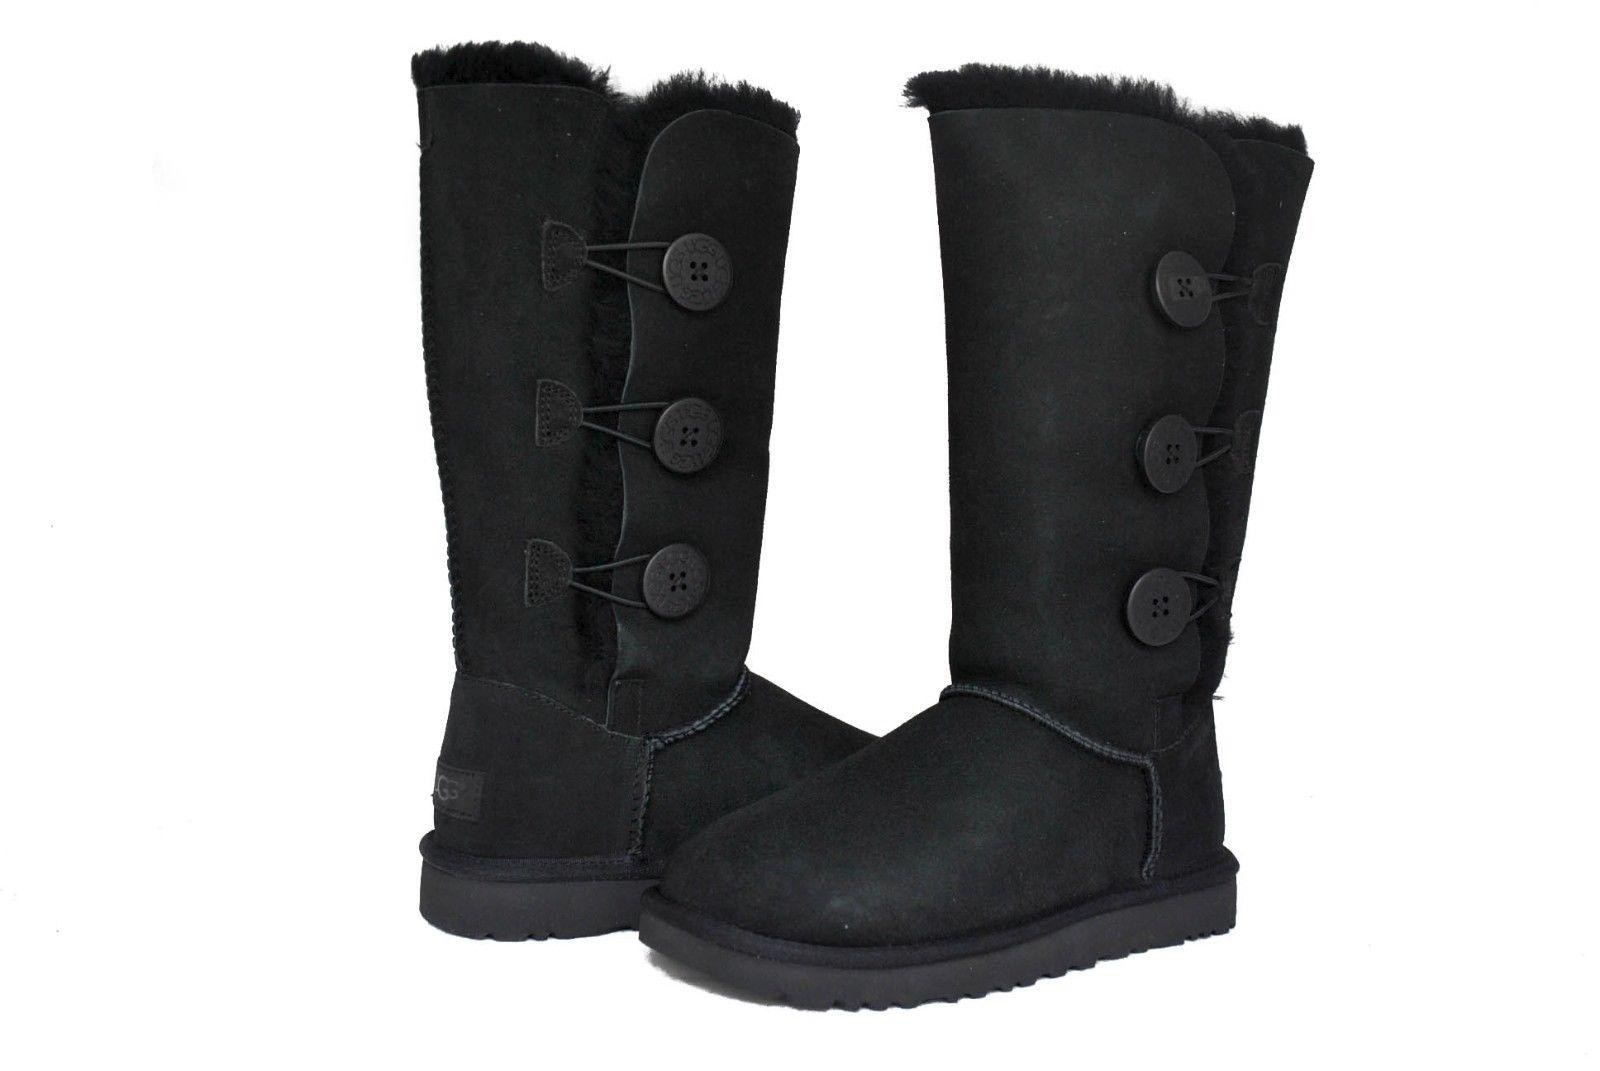 aa7c6573ec2 authentic ugg boots womens bailey button triplet 4681a b95b9